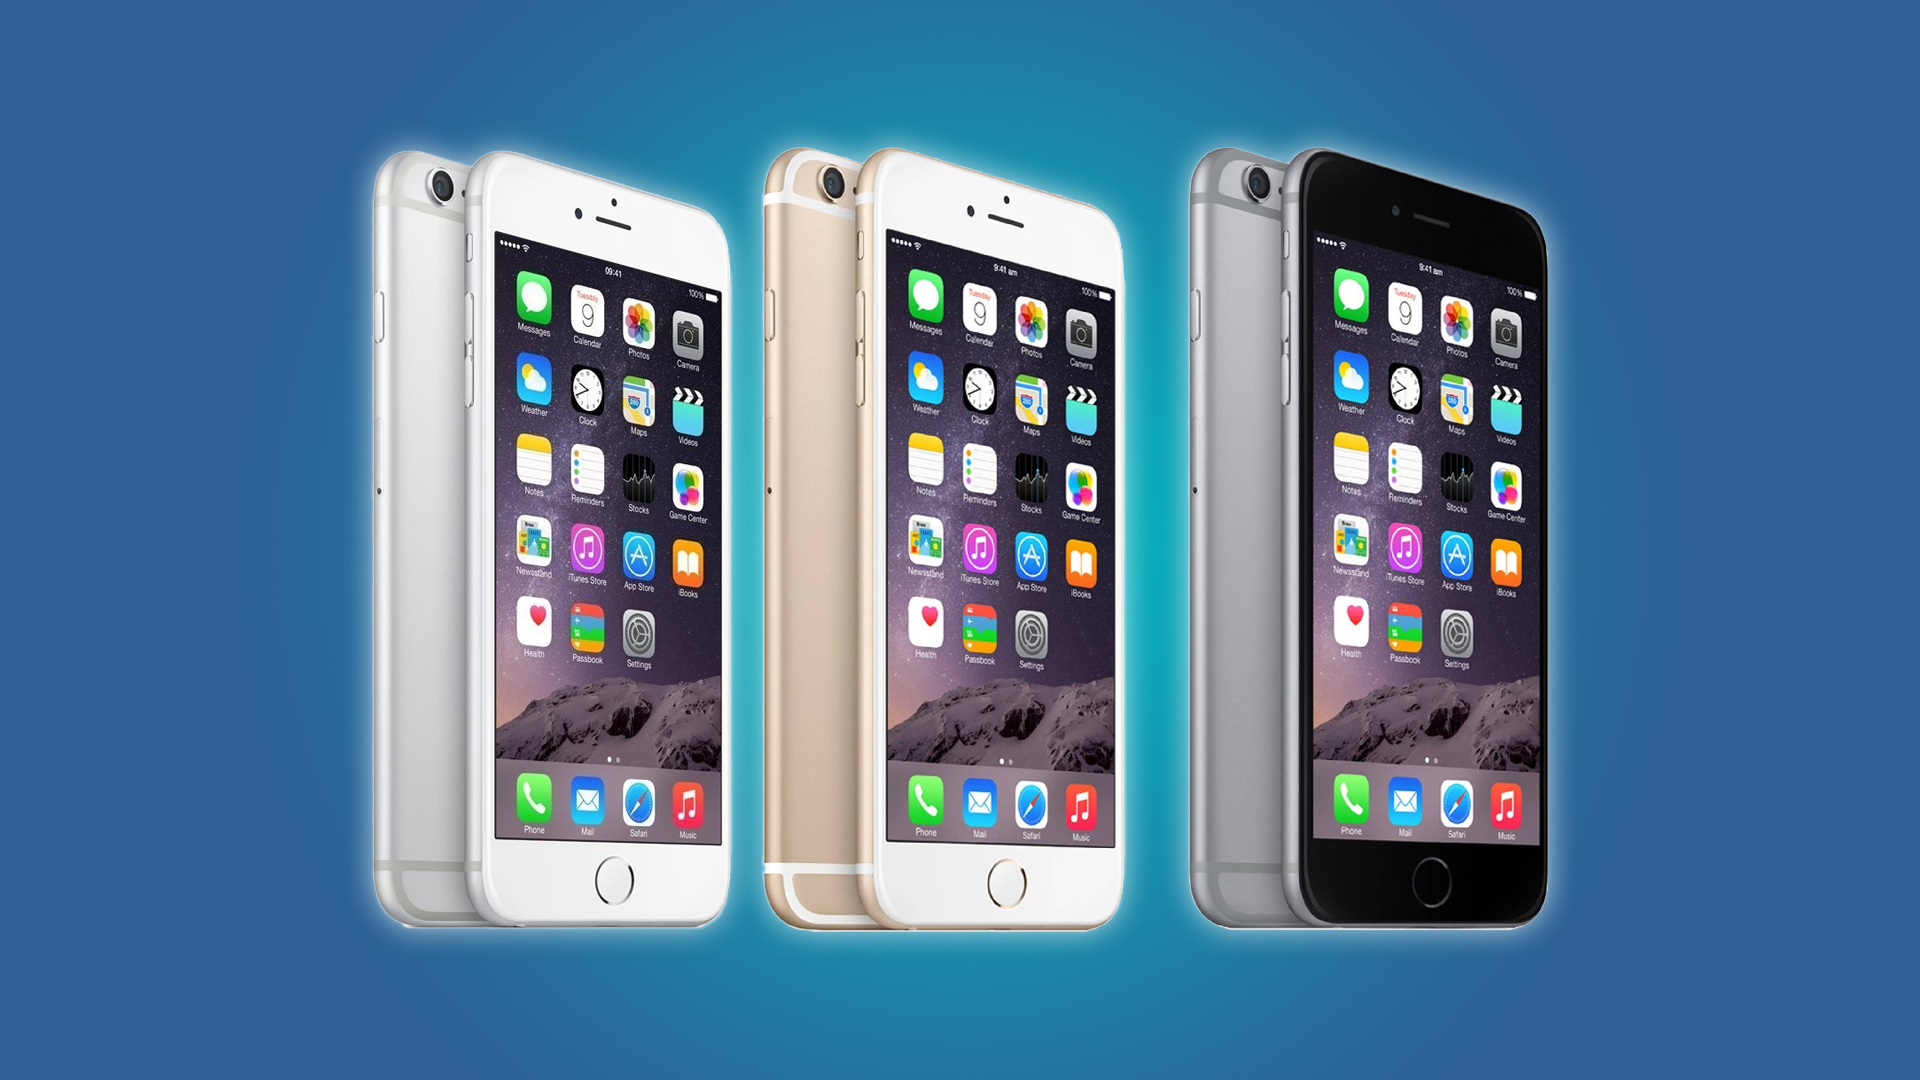 Deal Alert Buy a Refurbished iPhone 6 or 6 Plus for 120